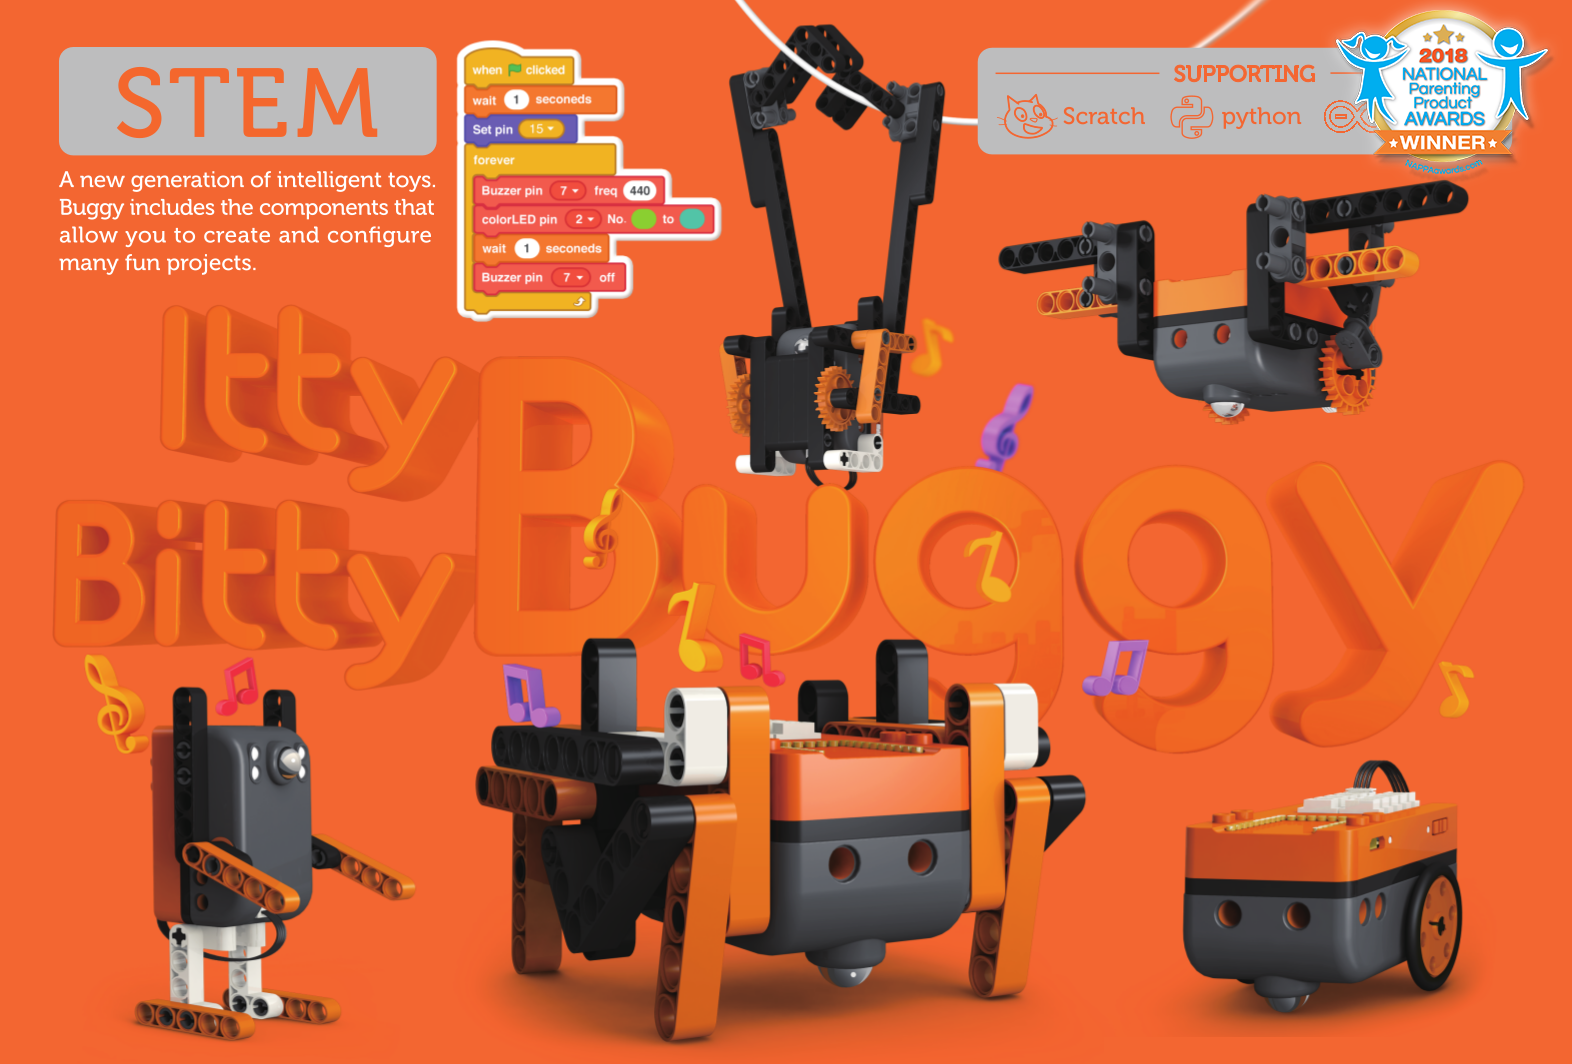 Celebrate NATIONAL S.T.E.M. Day With These Cool S.T.E.M Toys